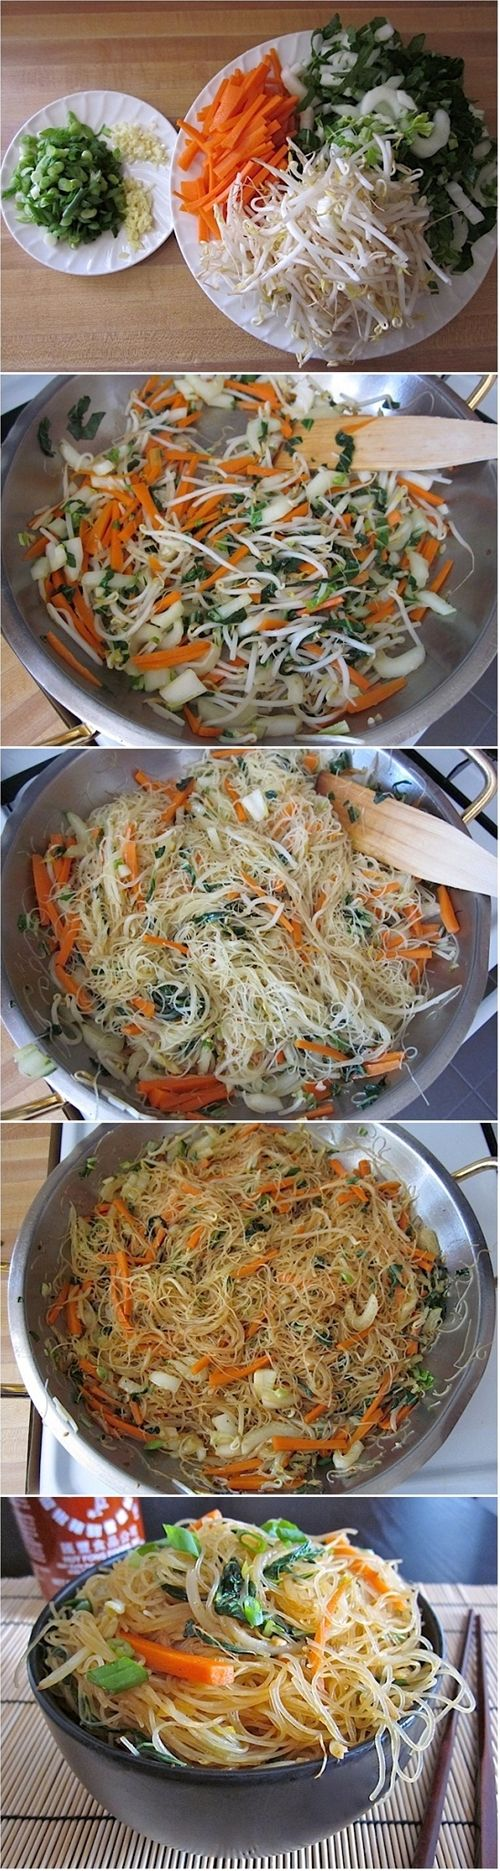 Ingredients: 8 oz. rice vermicelli noodles 1 Tbsp hot curry powder 2 cloves garlic 1 inch fresh ginger 3 Tbsp vegetable oil 1 bunch bok choy 4 medium carrots 12 oz